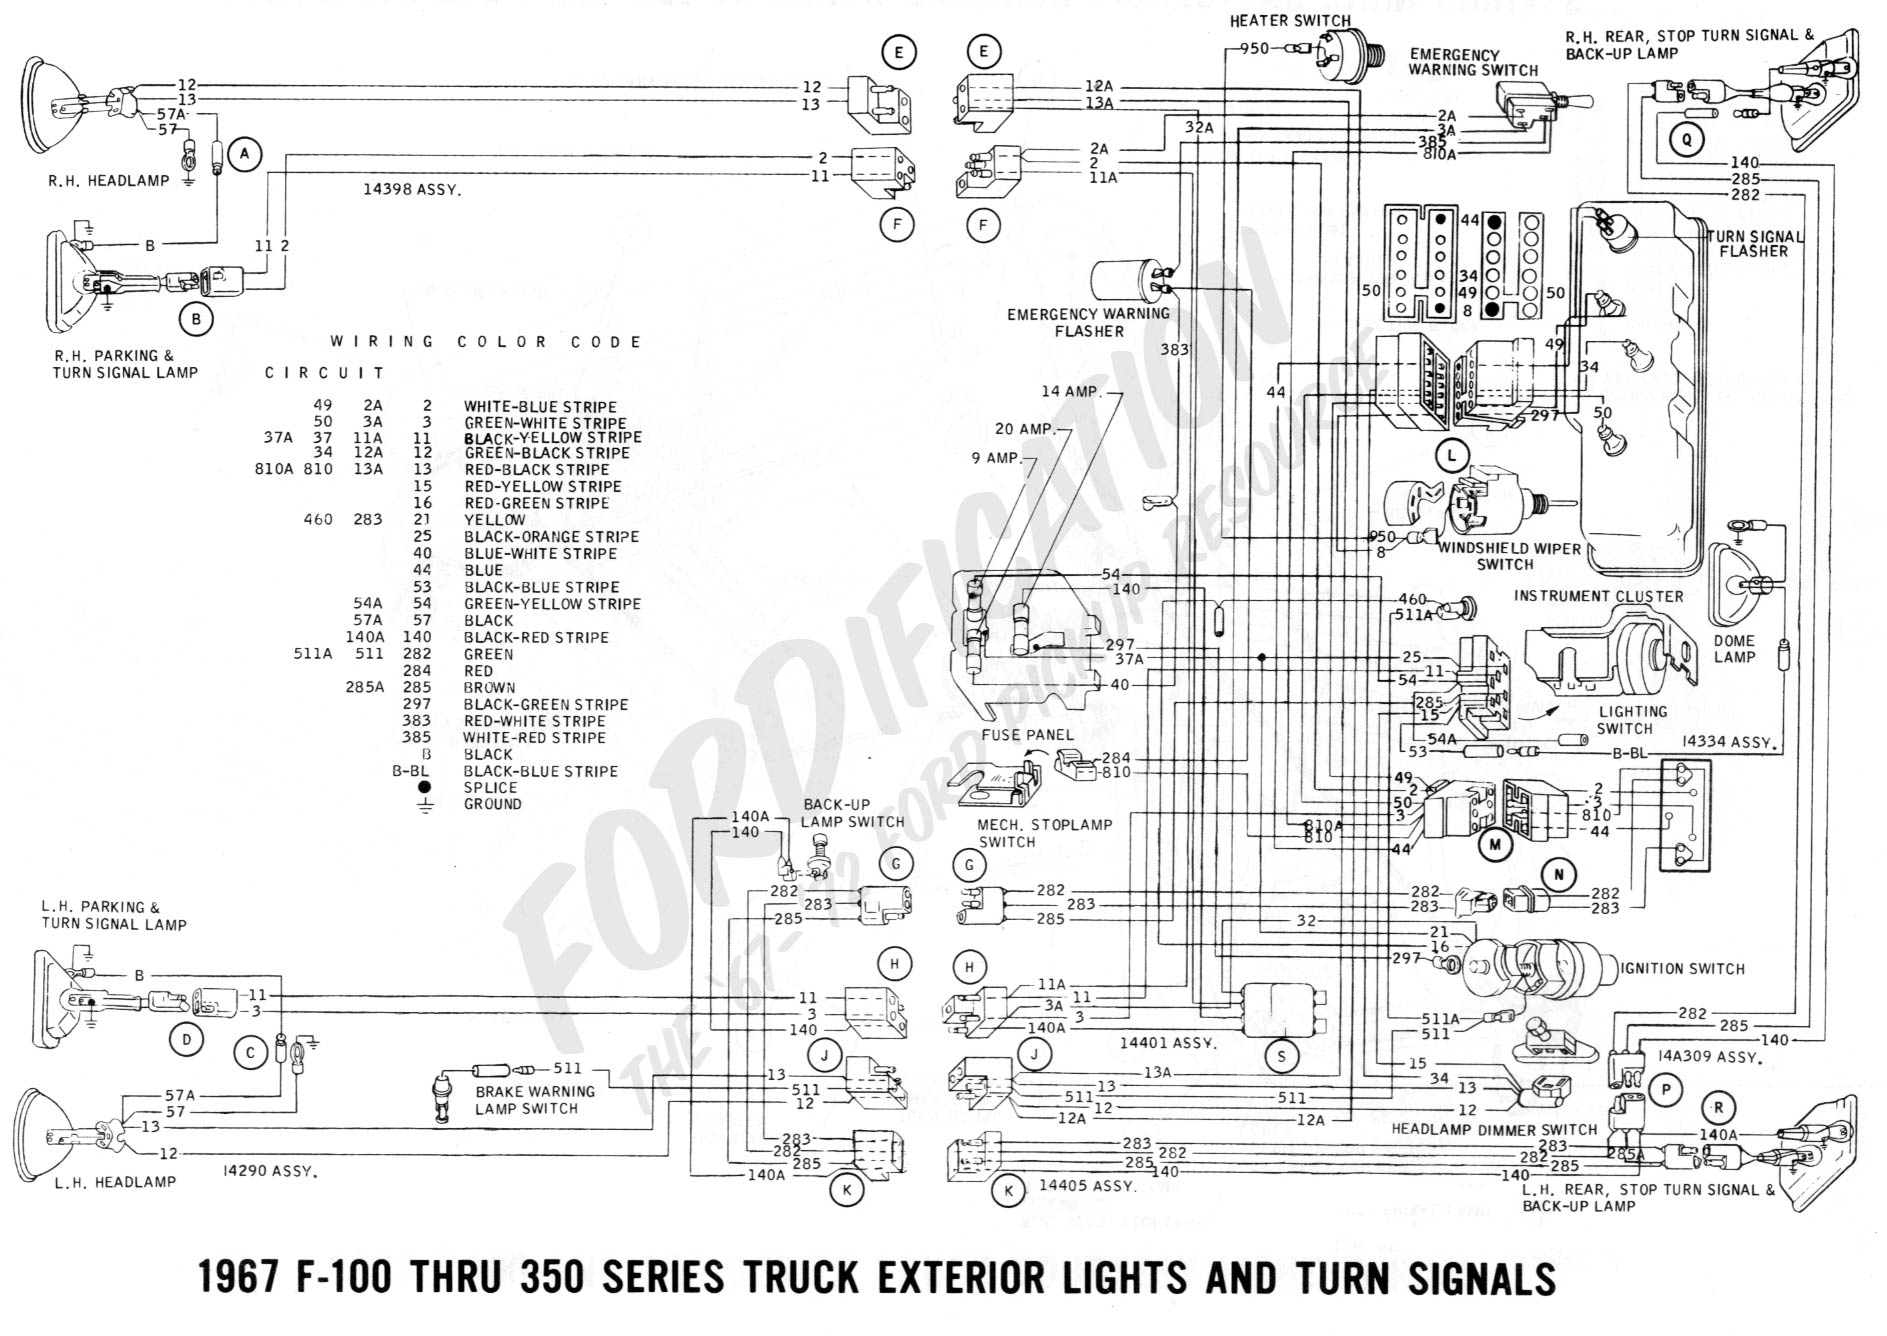 Ford 1967 Truck Wiring Diagram | Wiring Diagram - Mustang Trailer Wiring Diagram